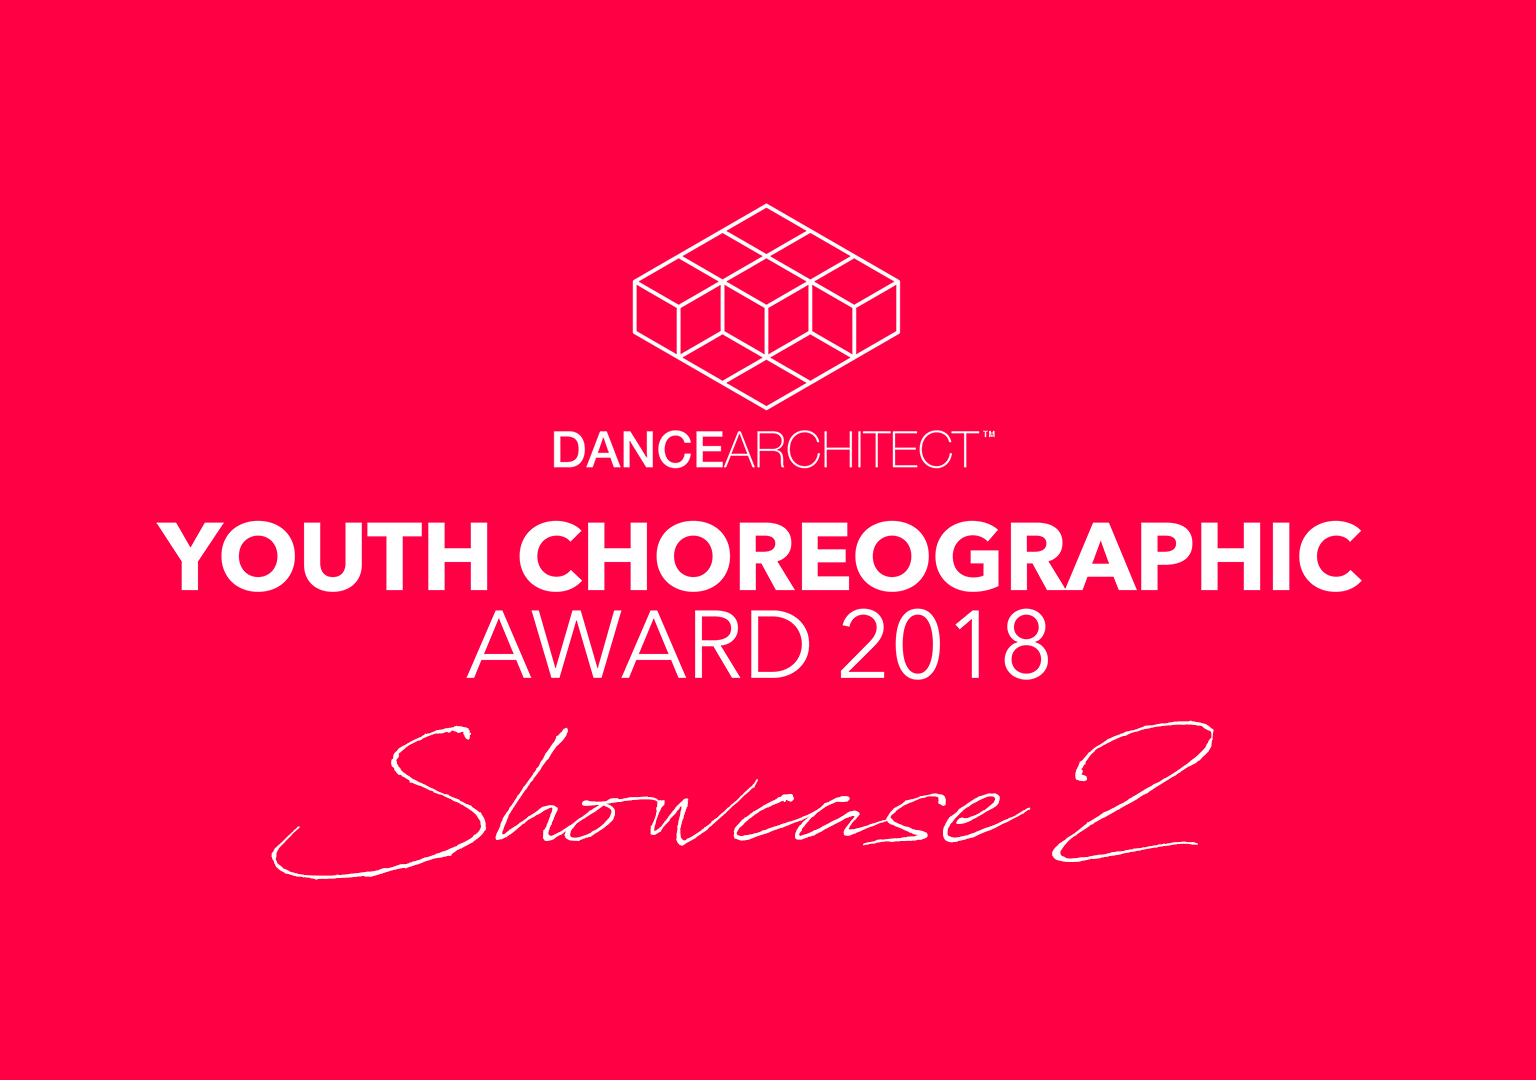 Over 21 Showcase: 2nd October 2018, 2pm